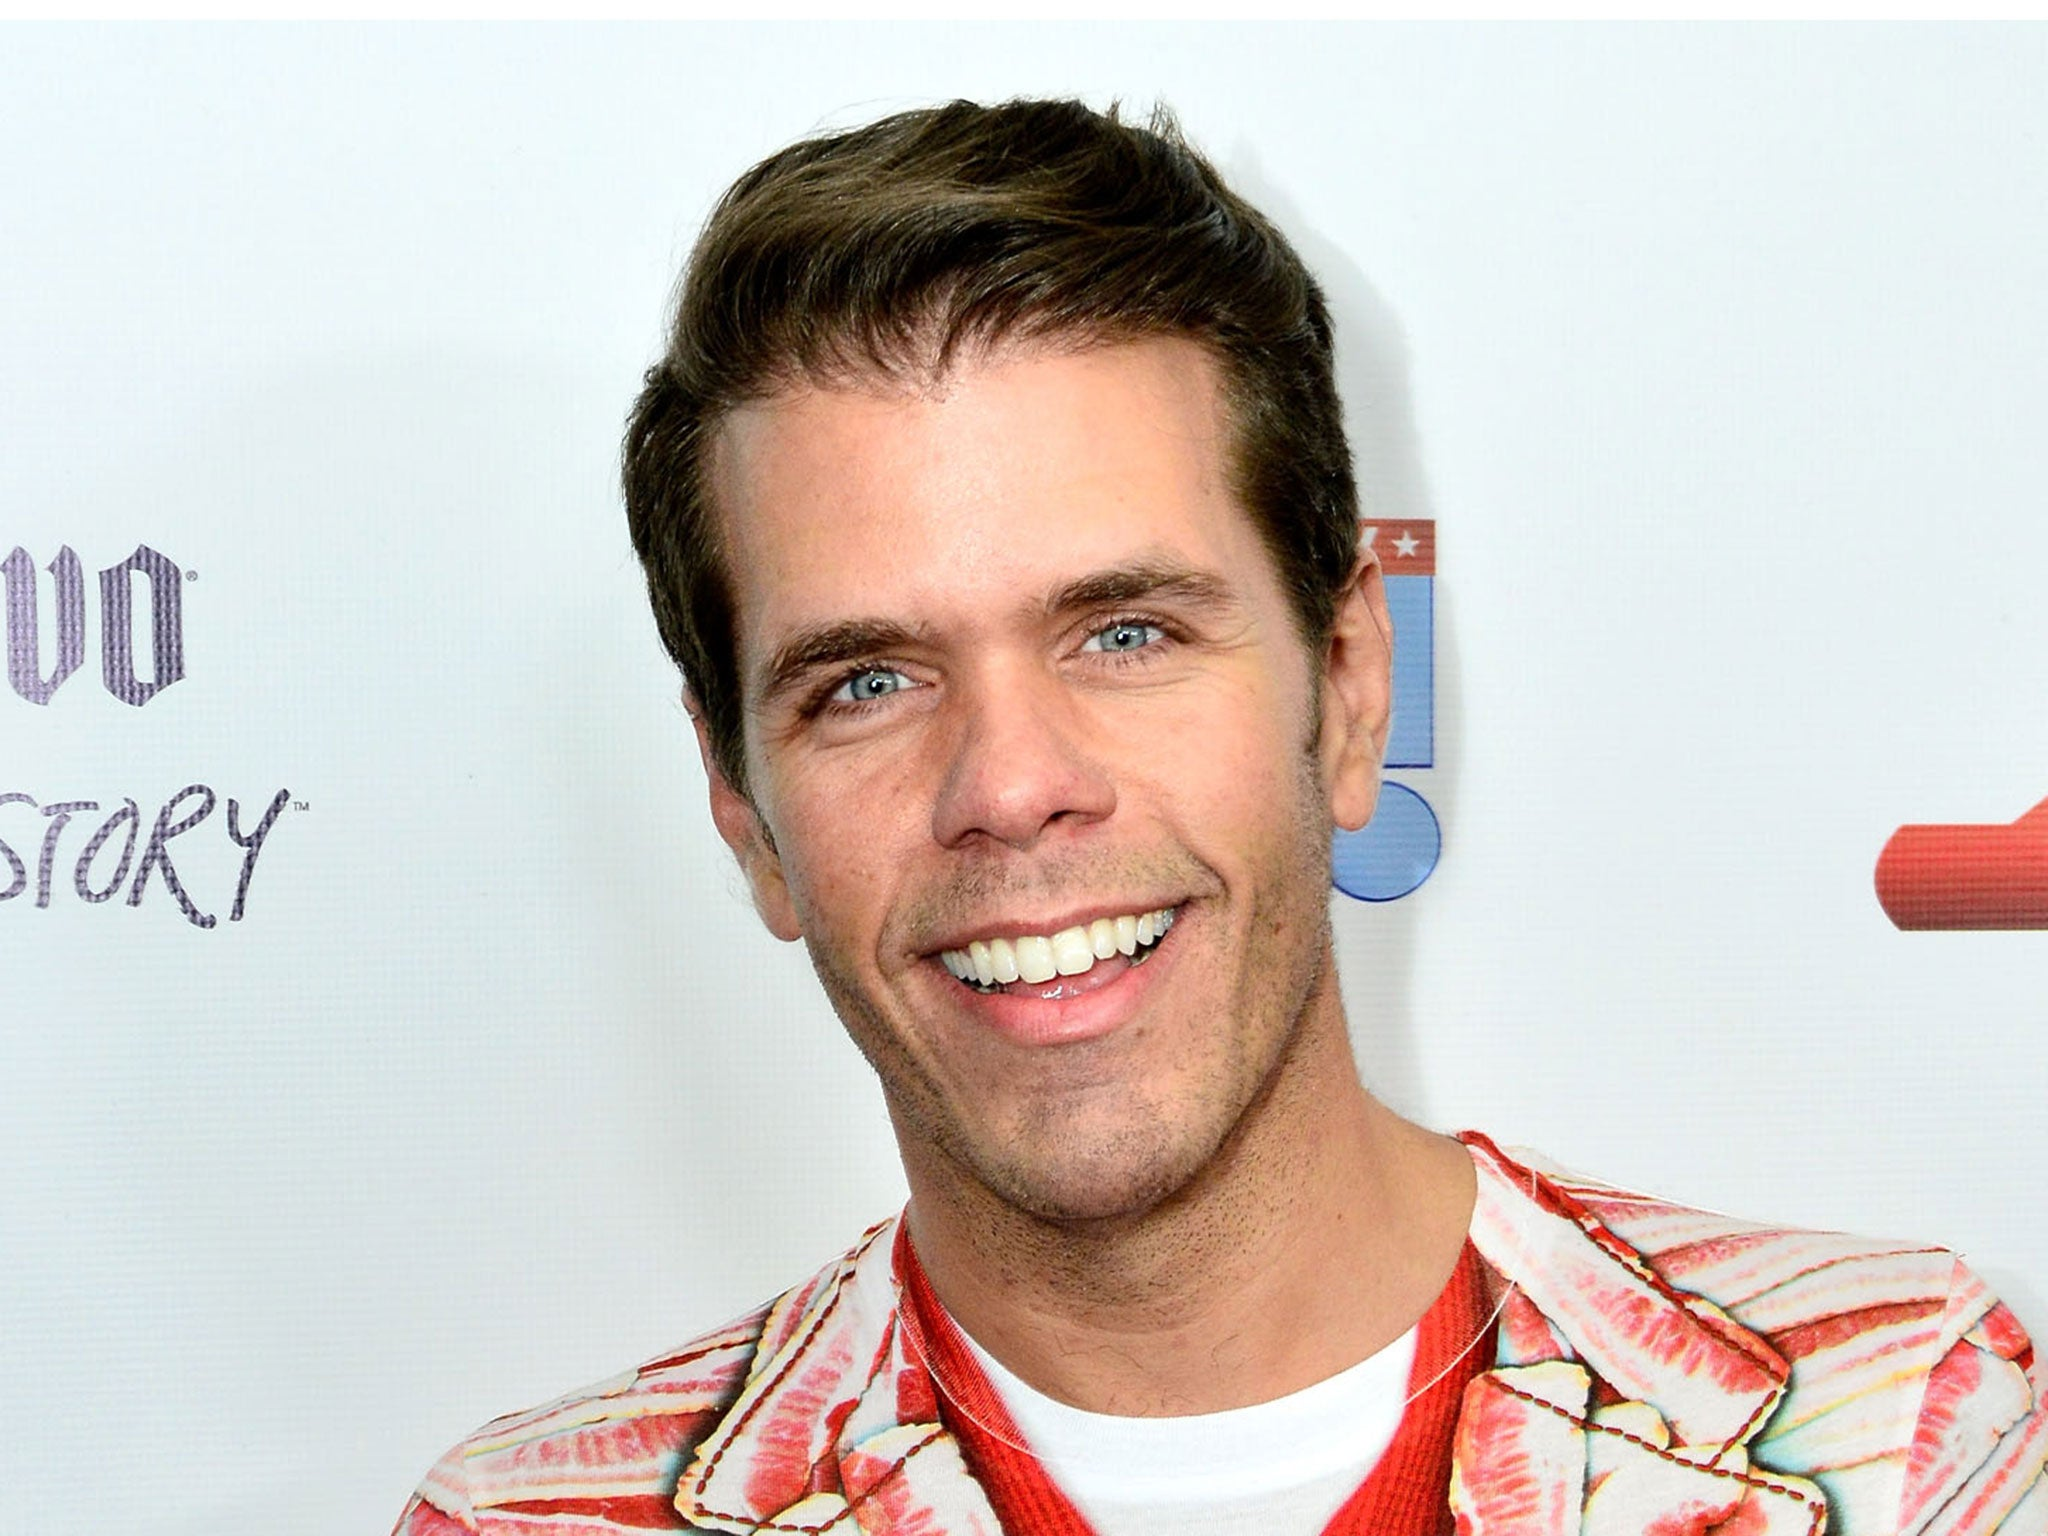 Perez Hilton will reportedly enter Celebrity Big Brother house in £150,000 deal | News | Culture | The Independent - Perez-Hilton